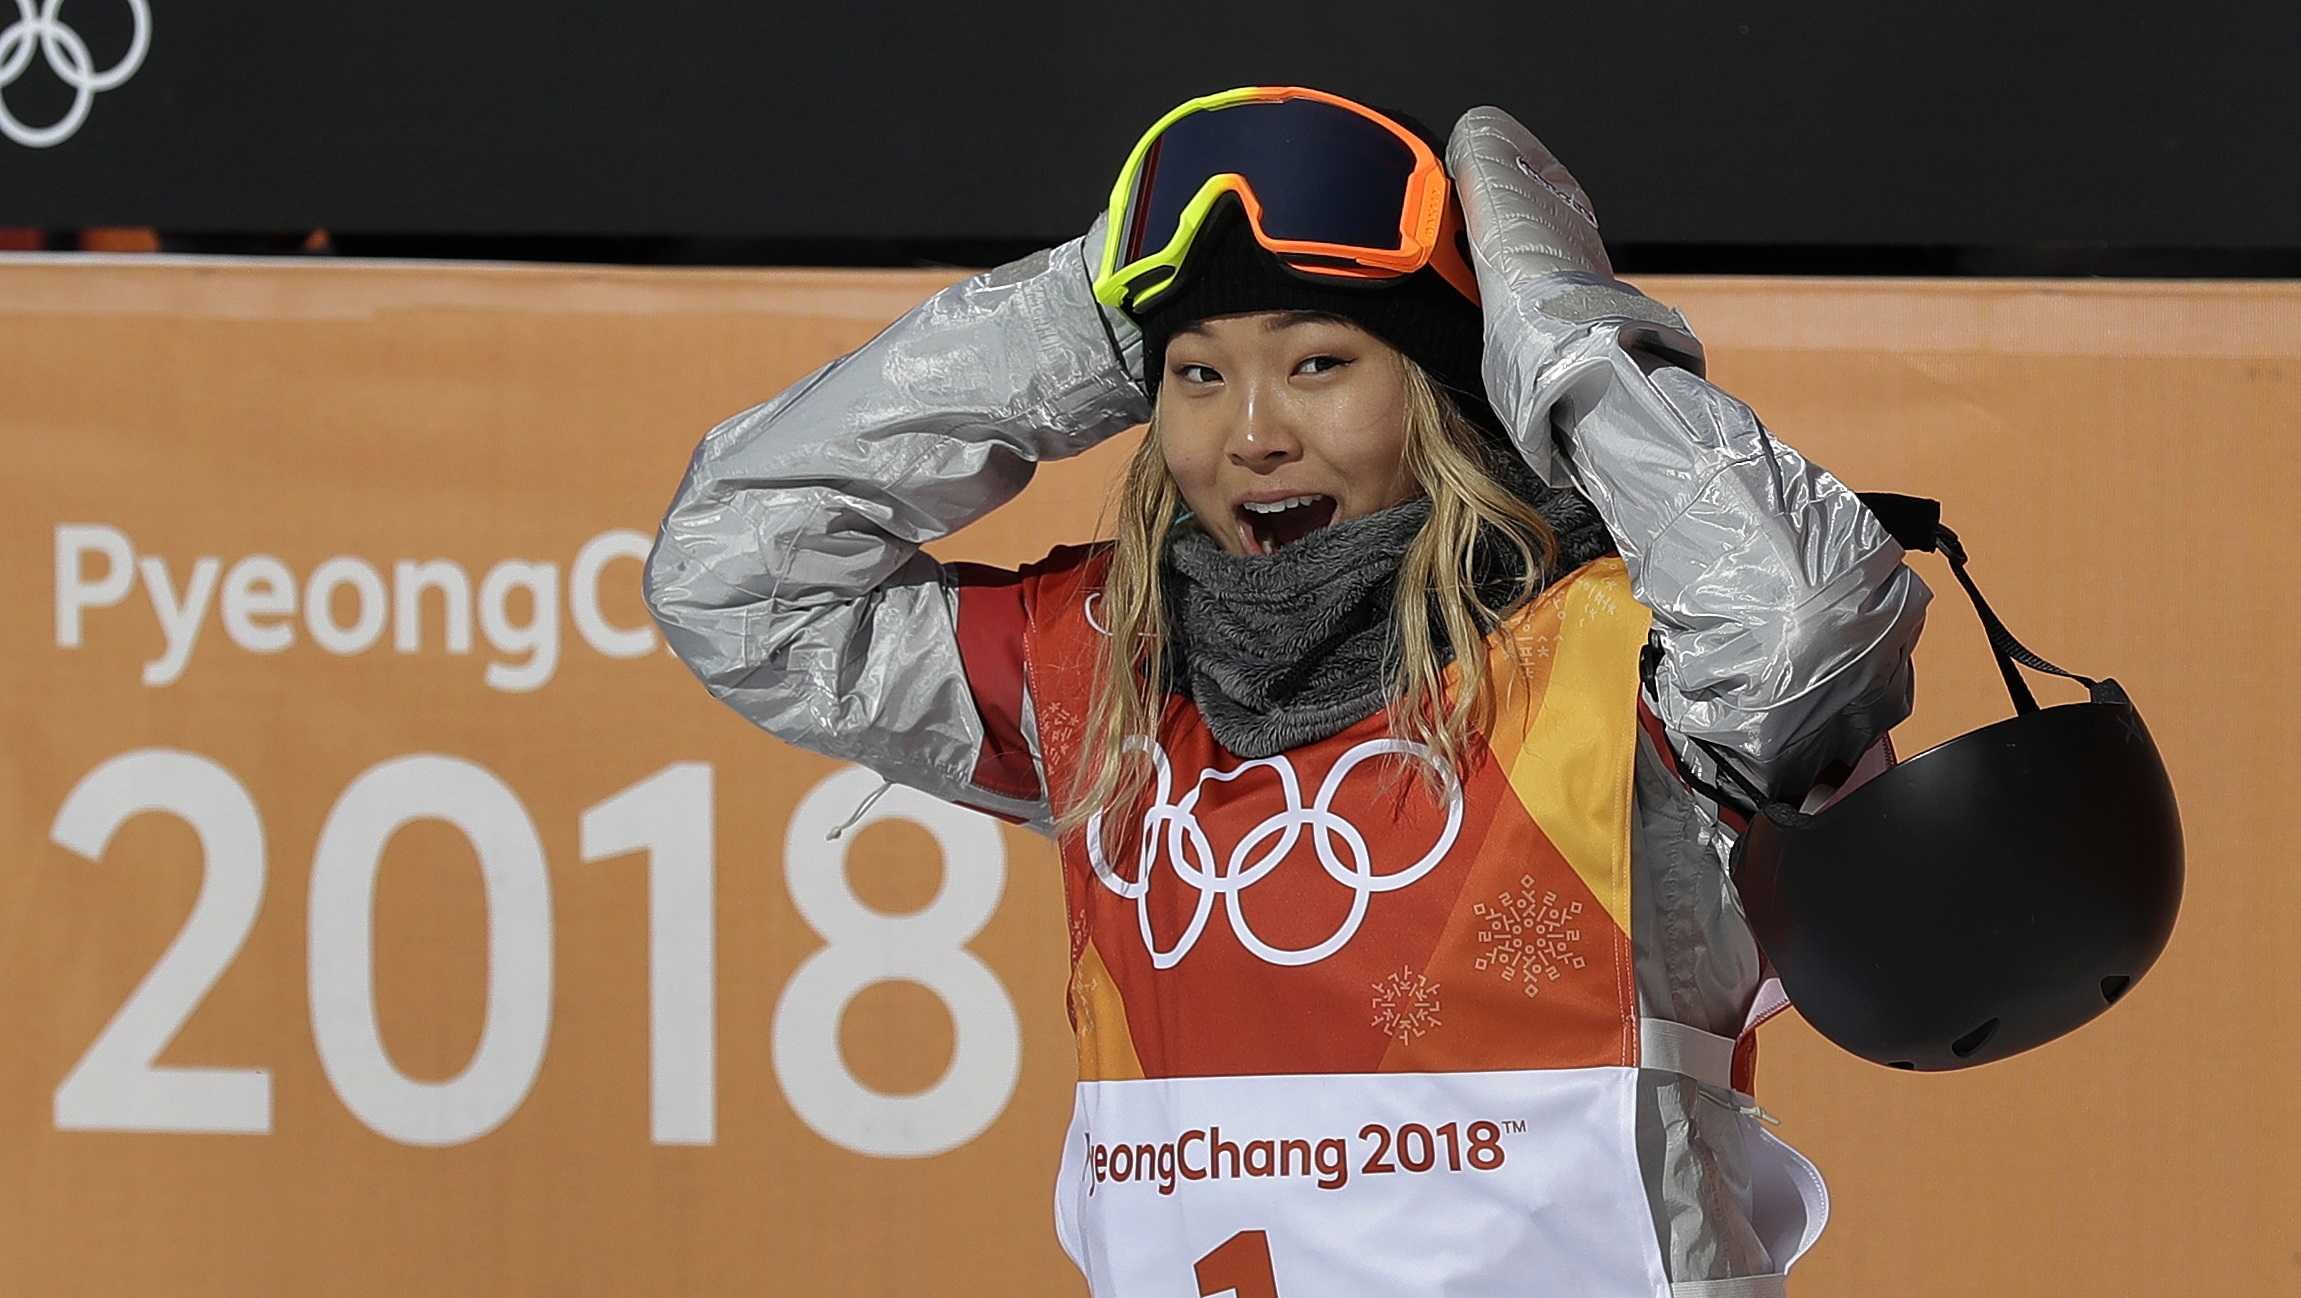 Chloe Kim, of the United States, reacts to her score during the women's halfpipe finals at Phoenix Snow Park at the 2018 Winter Olympics in Pyeongchang, South Korea, Tuesday, Feb. 13, 2018.